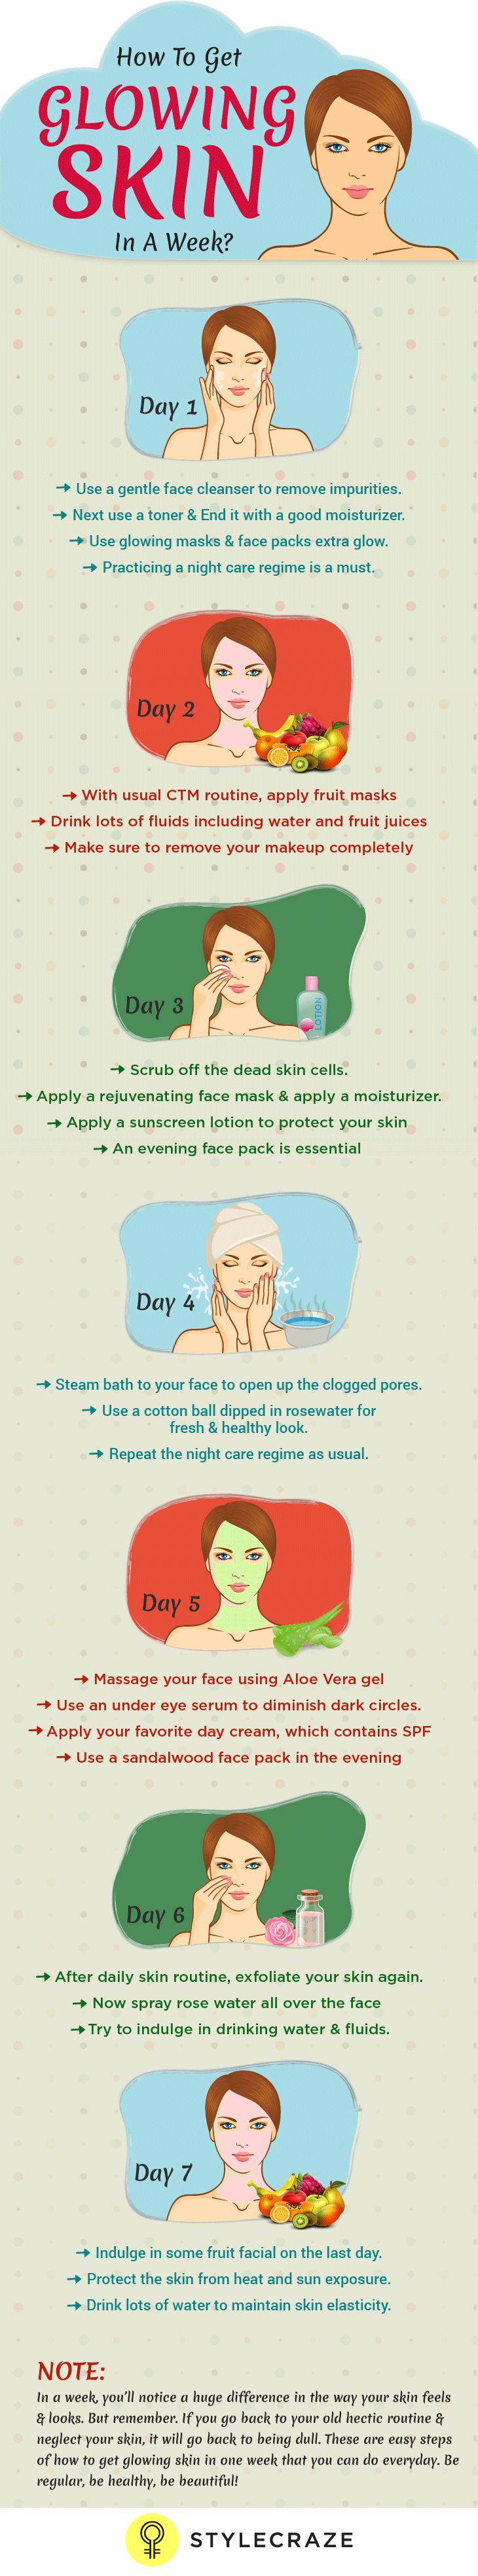 How To Get Glowing Skin In 7 Days - With Day By Day Instructions